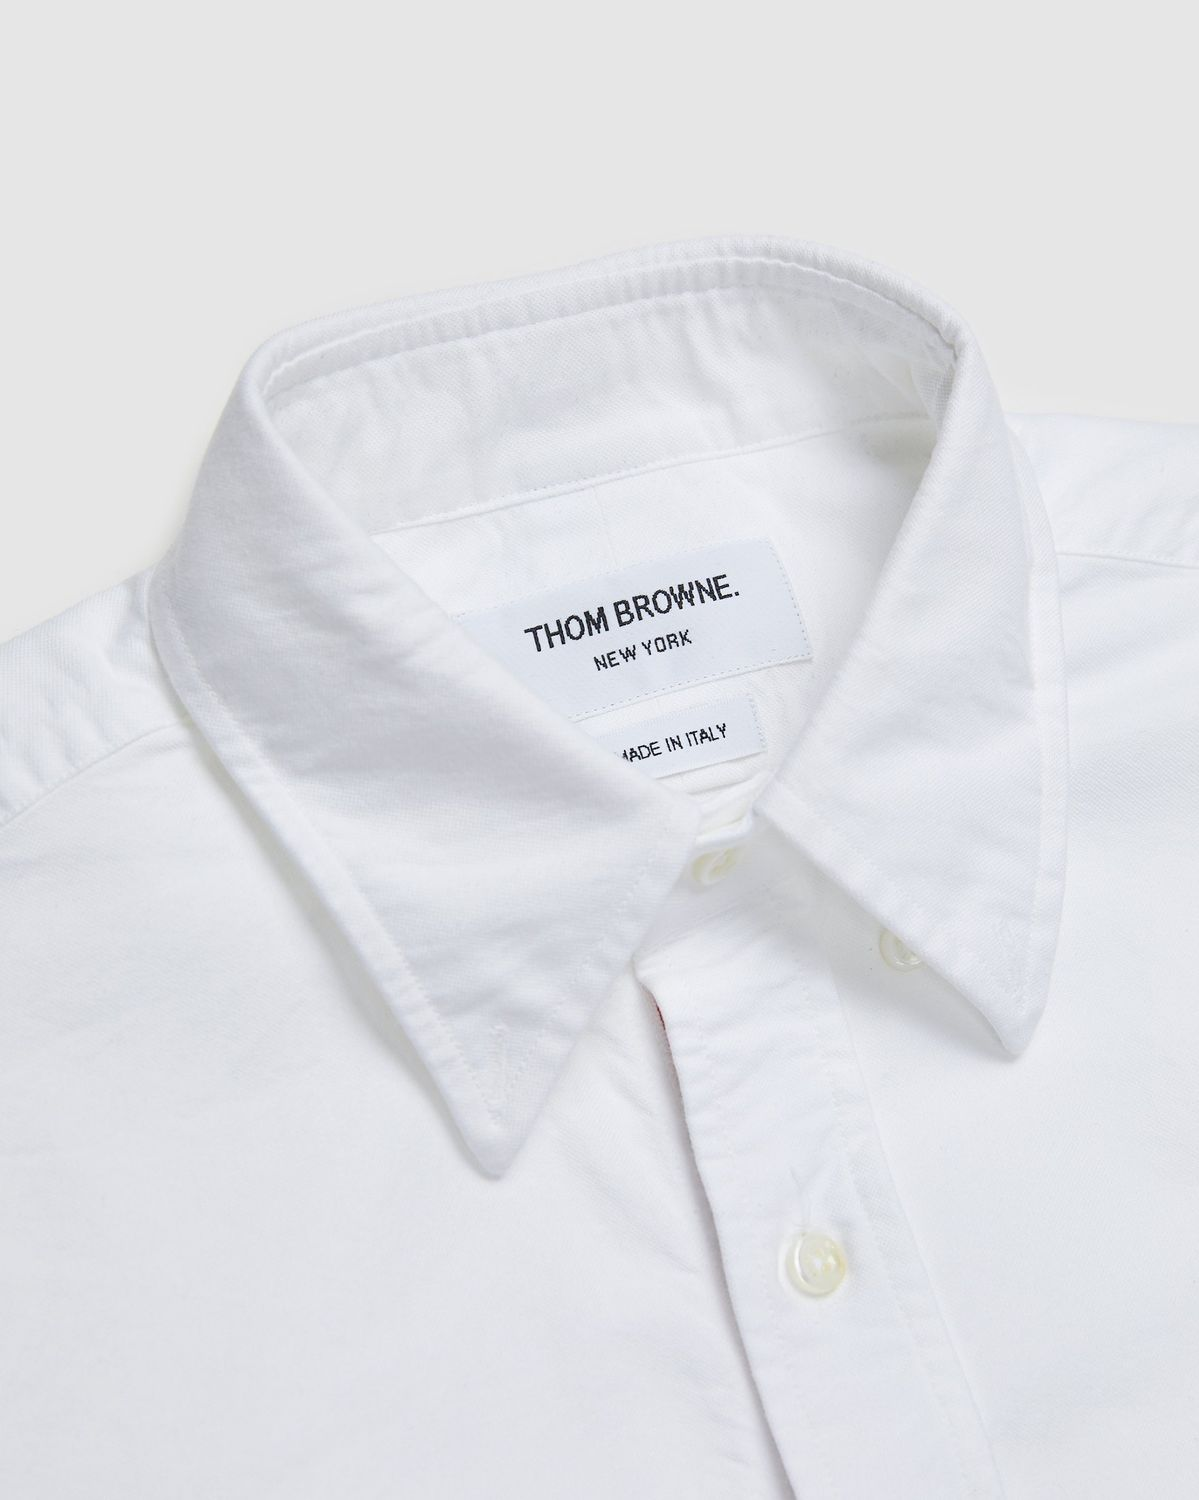 Colette Mon Amour x Thom Browne - White Heart Classic Shirt - Image 3